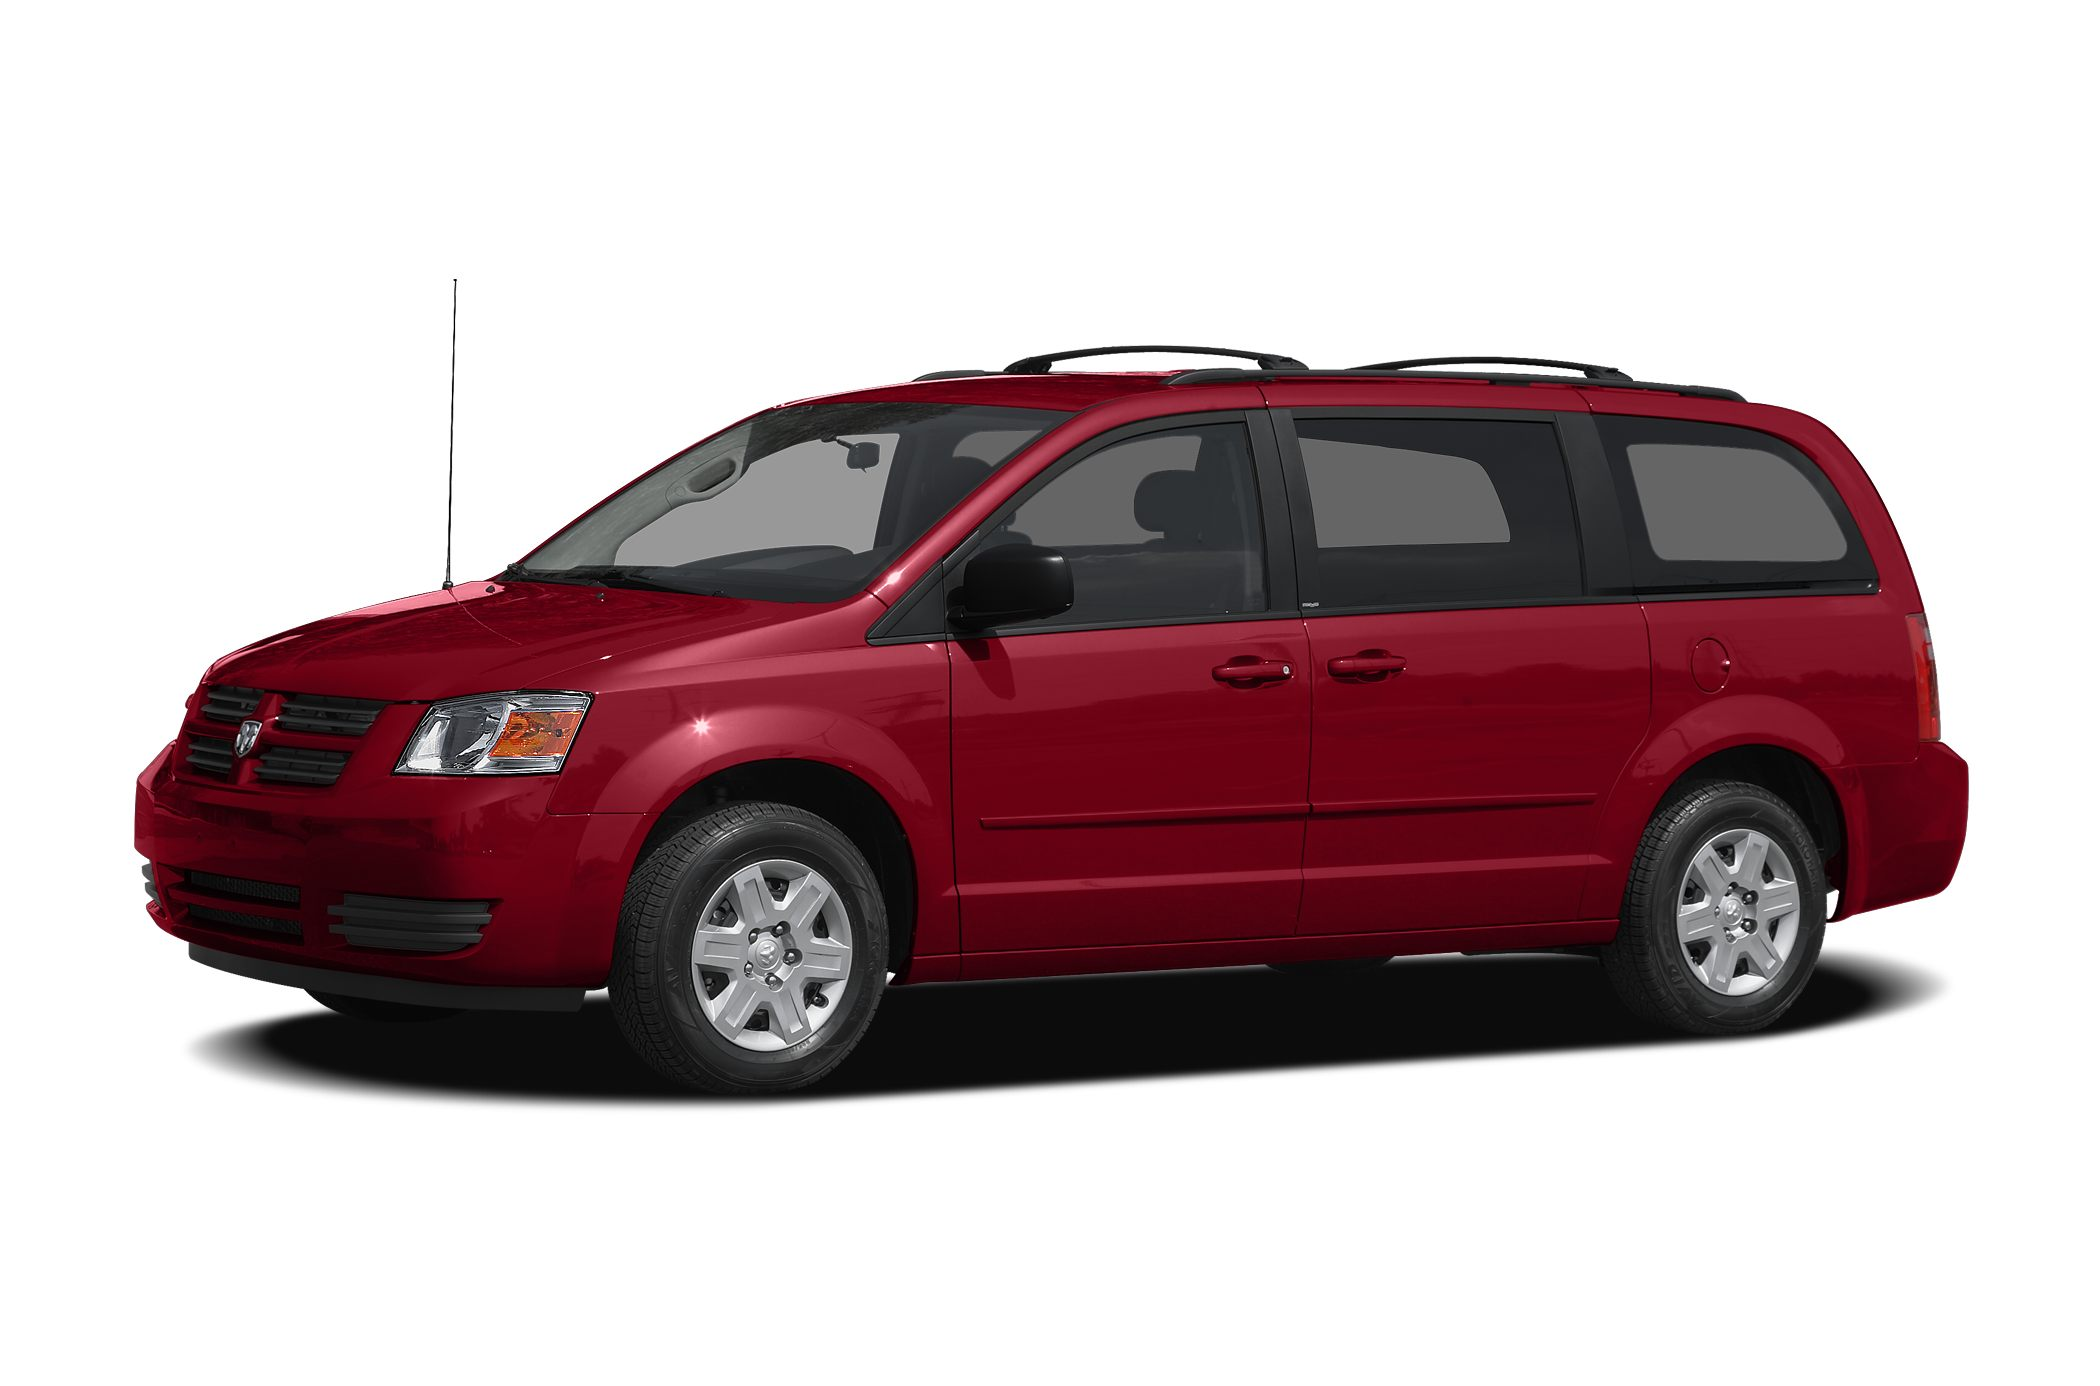 2009 Dodge Grand Caravan SE Minivan for sale in Louisville for $9,898 with 109,671 miles.